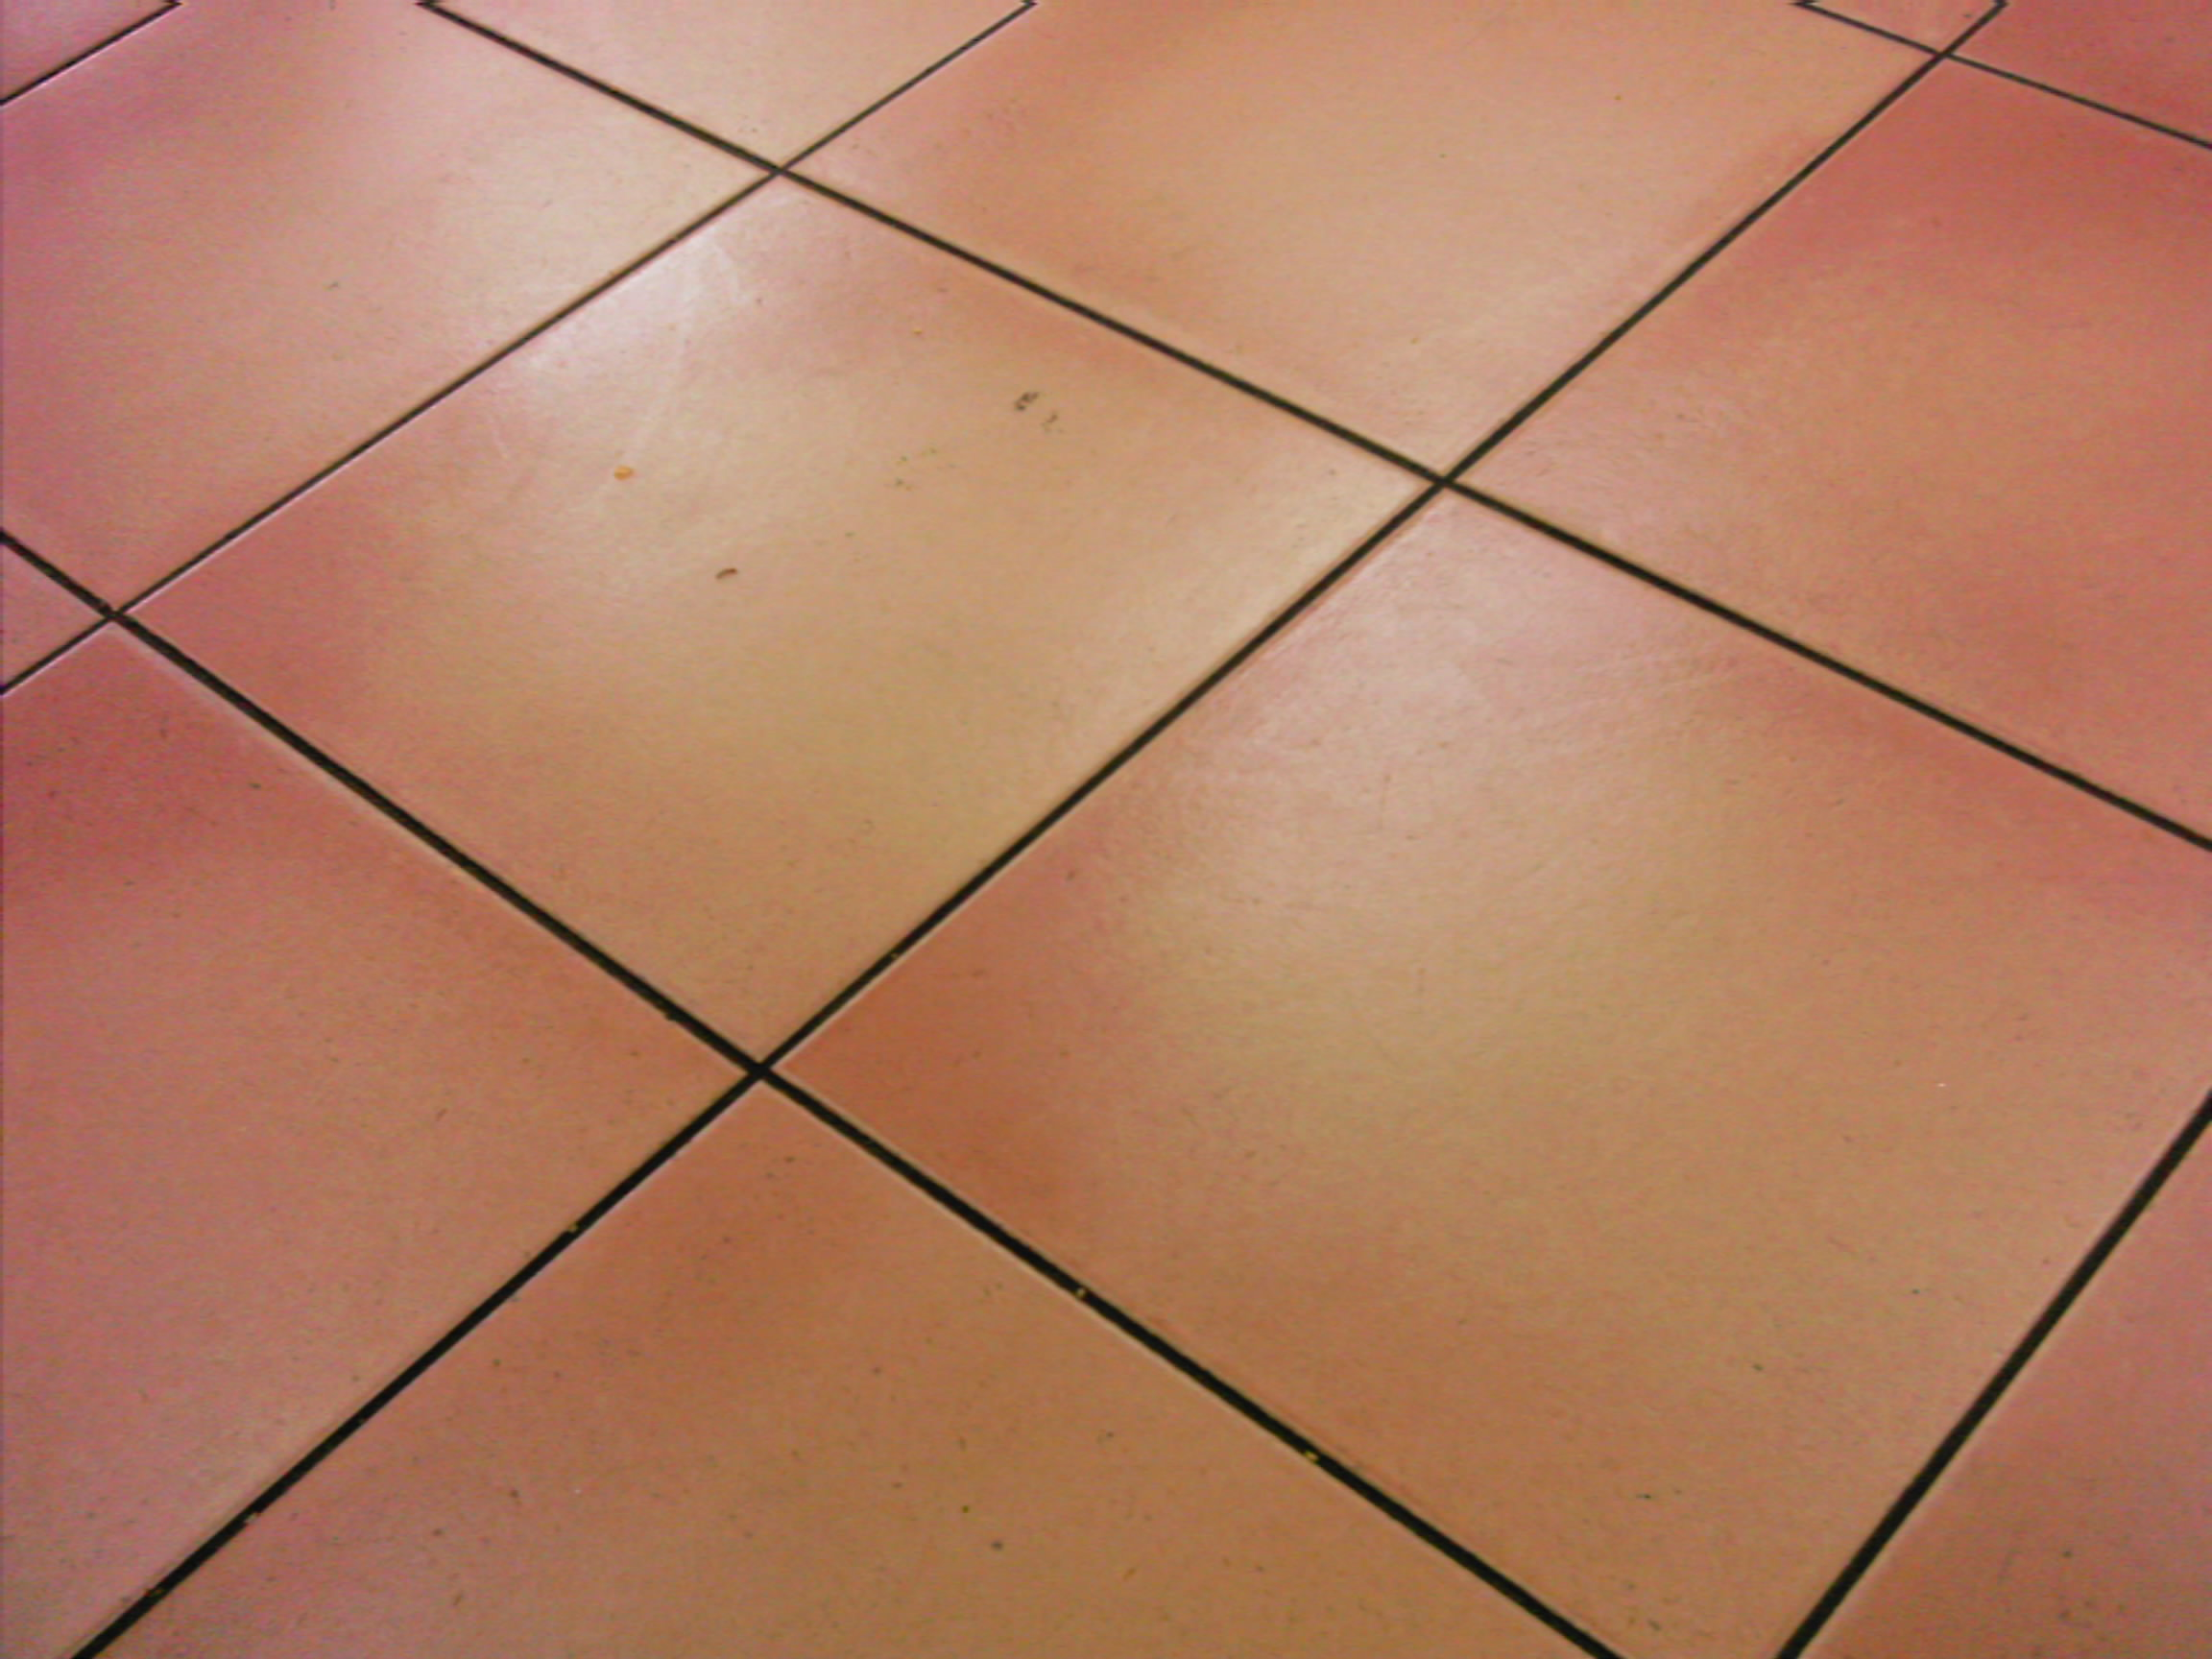 Professional grout and tile cleaning olmos park 210 637 5050 lonestar tile and grout - Clean tile grout efficiently ...